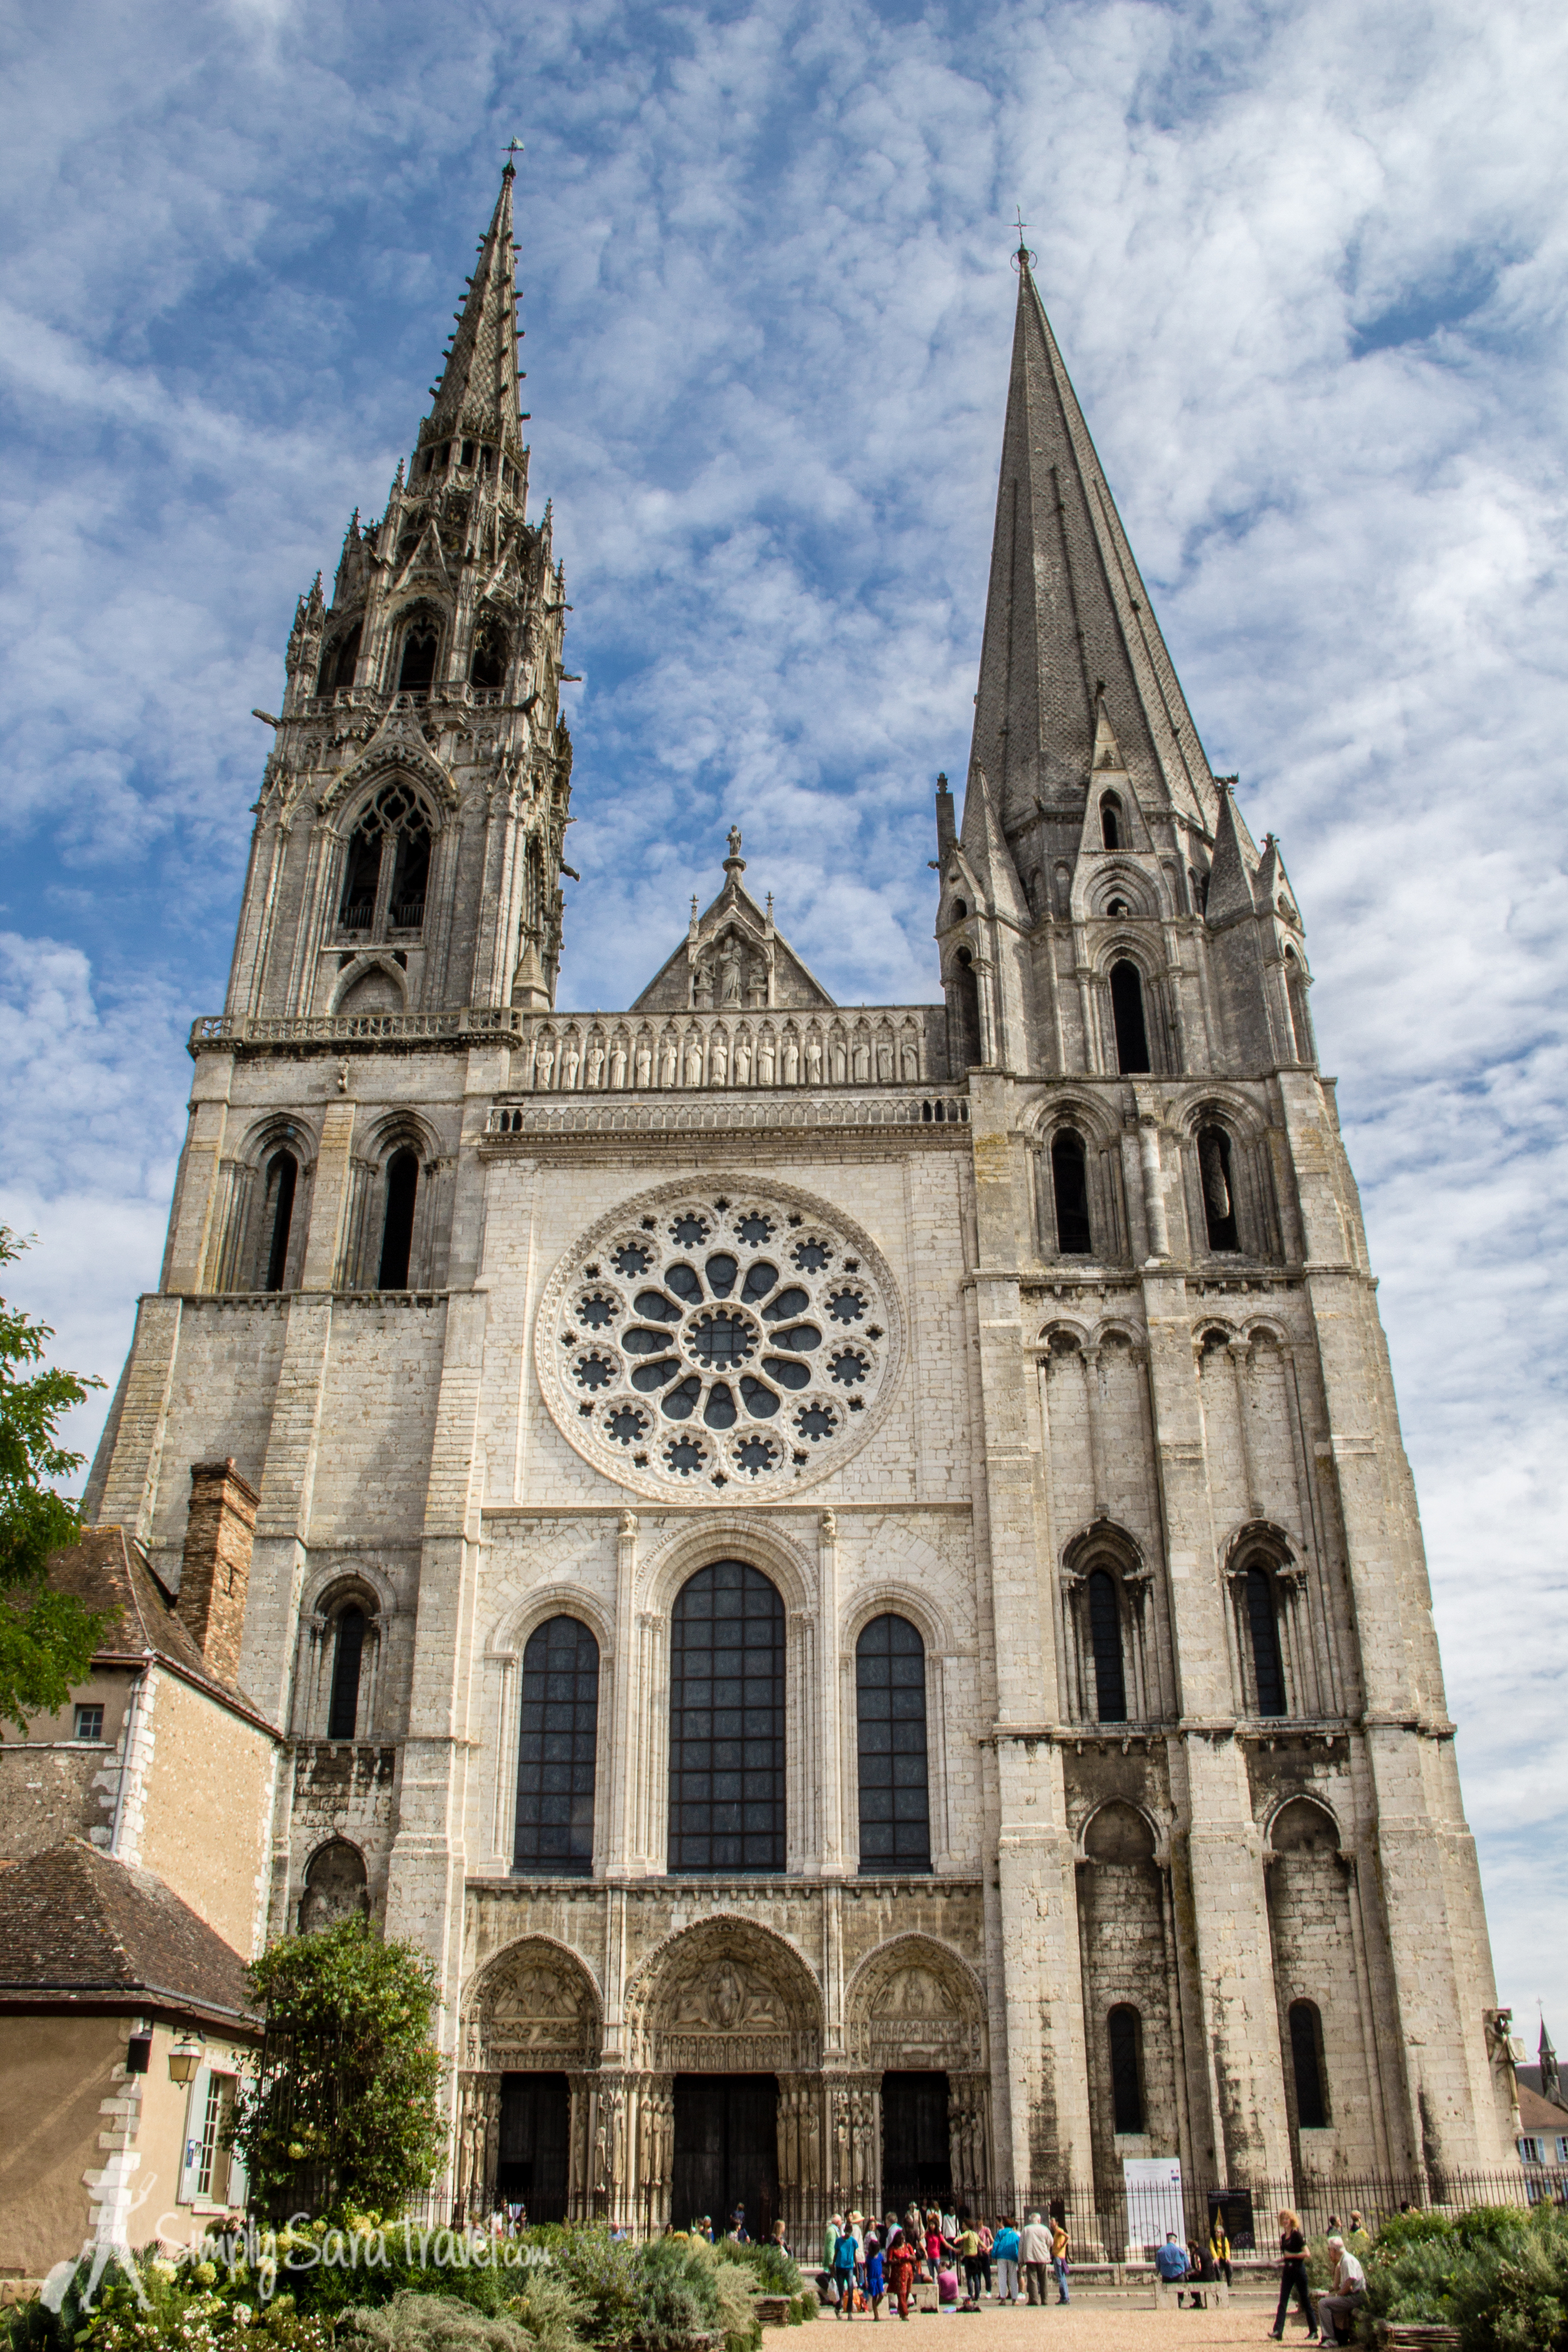 Outside the Chartres Cathedral